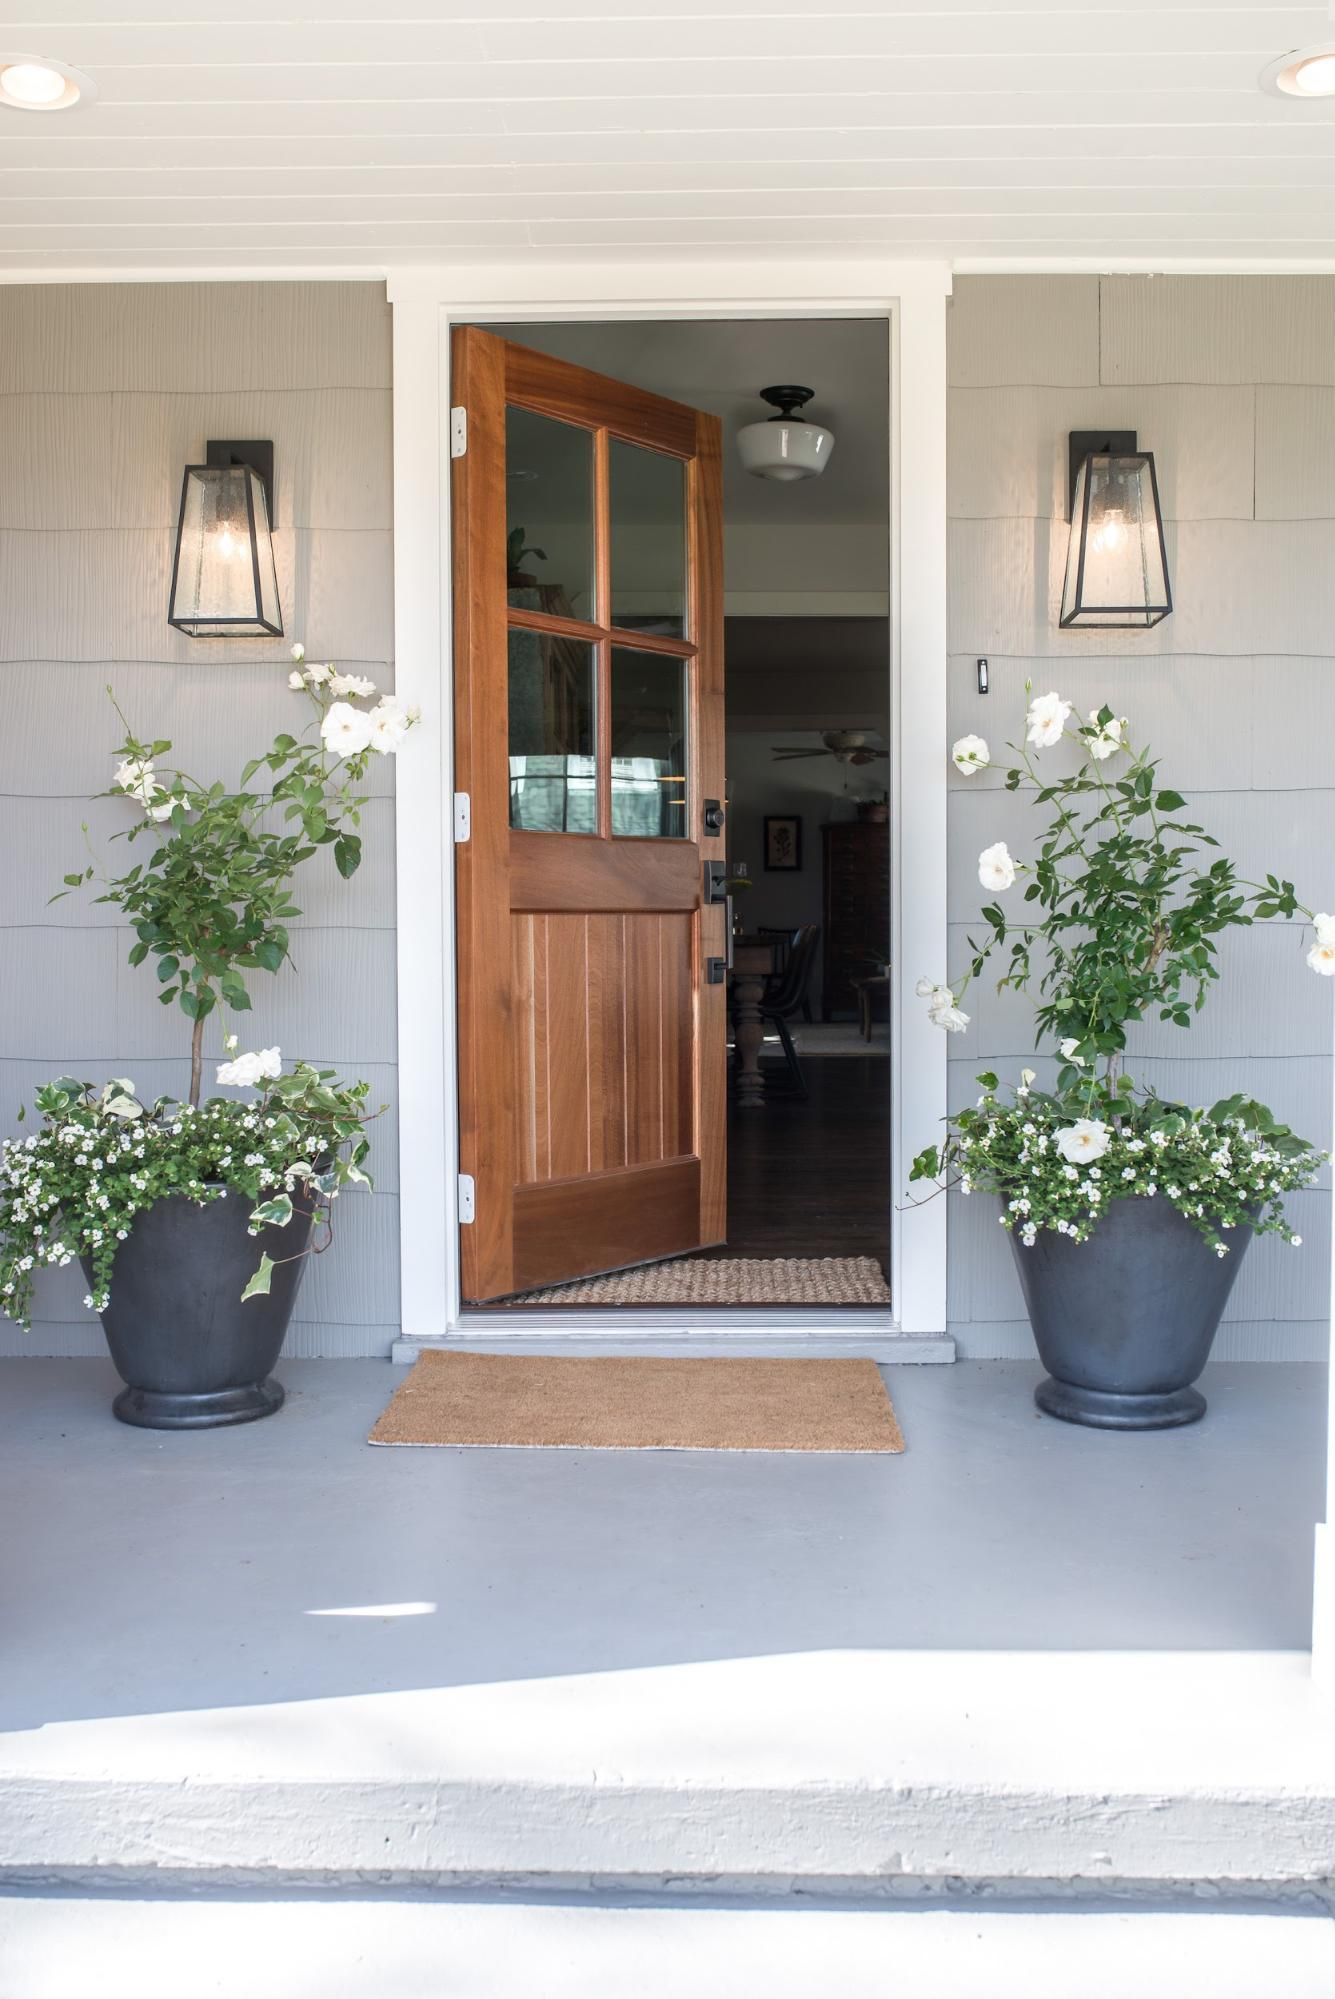 Episode 5: Season 5 in 2019 | Fixer Upper | House front door ... on front step lighting, front step boxes, front step fences, front step walkways, front step figurines, front step benches, front step lanterns, front step decks, front step pavers, front step landscaping, front step garden, front step flowers,